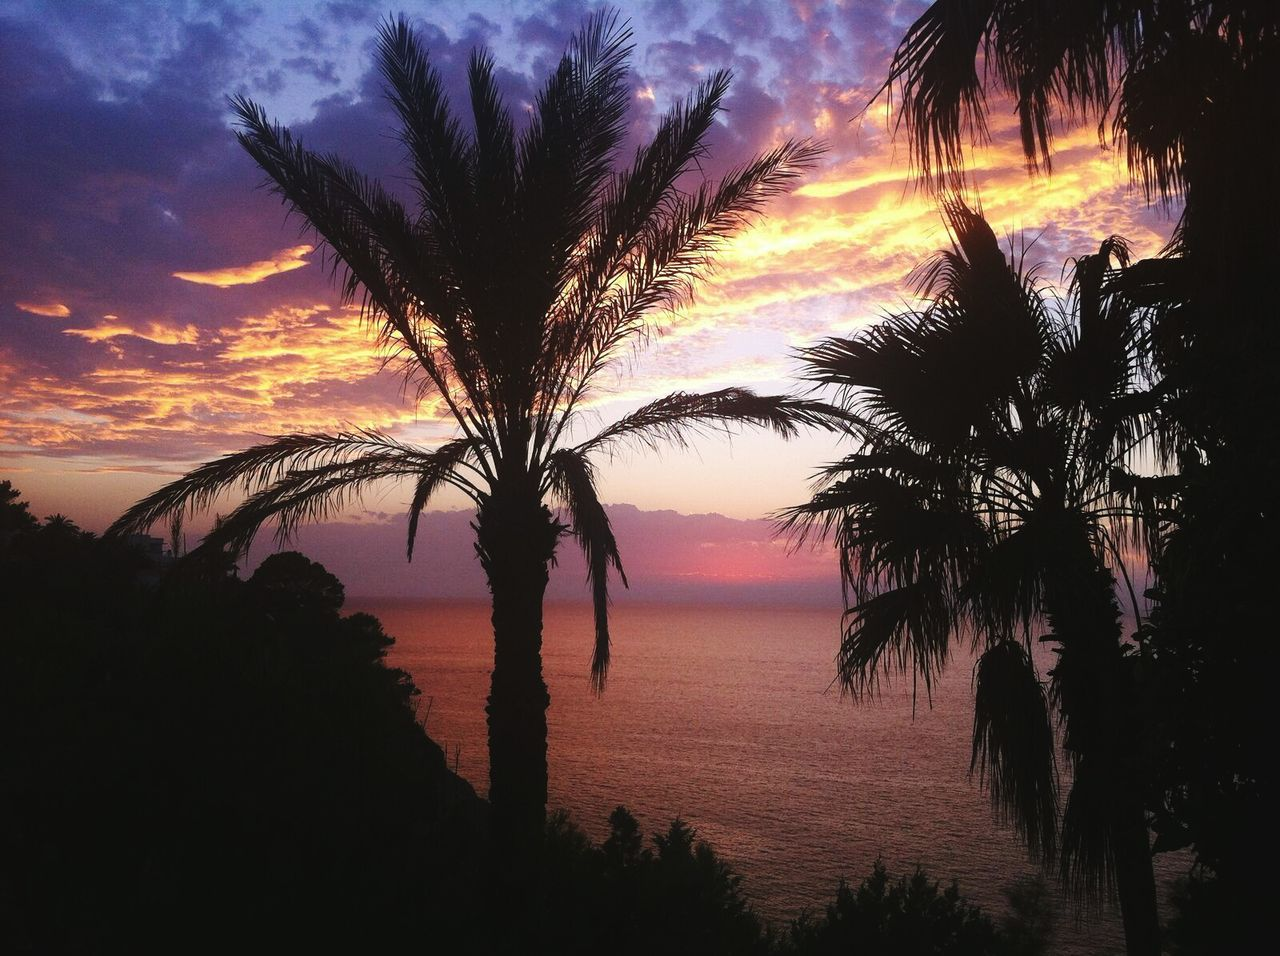 Sunset Palm Tree Tranquil Scene Sea Water Beach Dramatic Sky Horizon Over Water Colorful Sky Sunset Silhouettes Sunset Palm Tree Orange Gold Sunsetporn Ibiza Sunset Cala Cliff Majestic Cloud - Sky Nature Sunset View Sunset Colours Tranquility